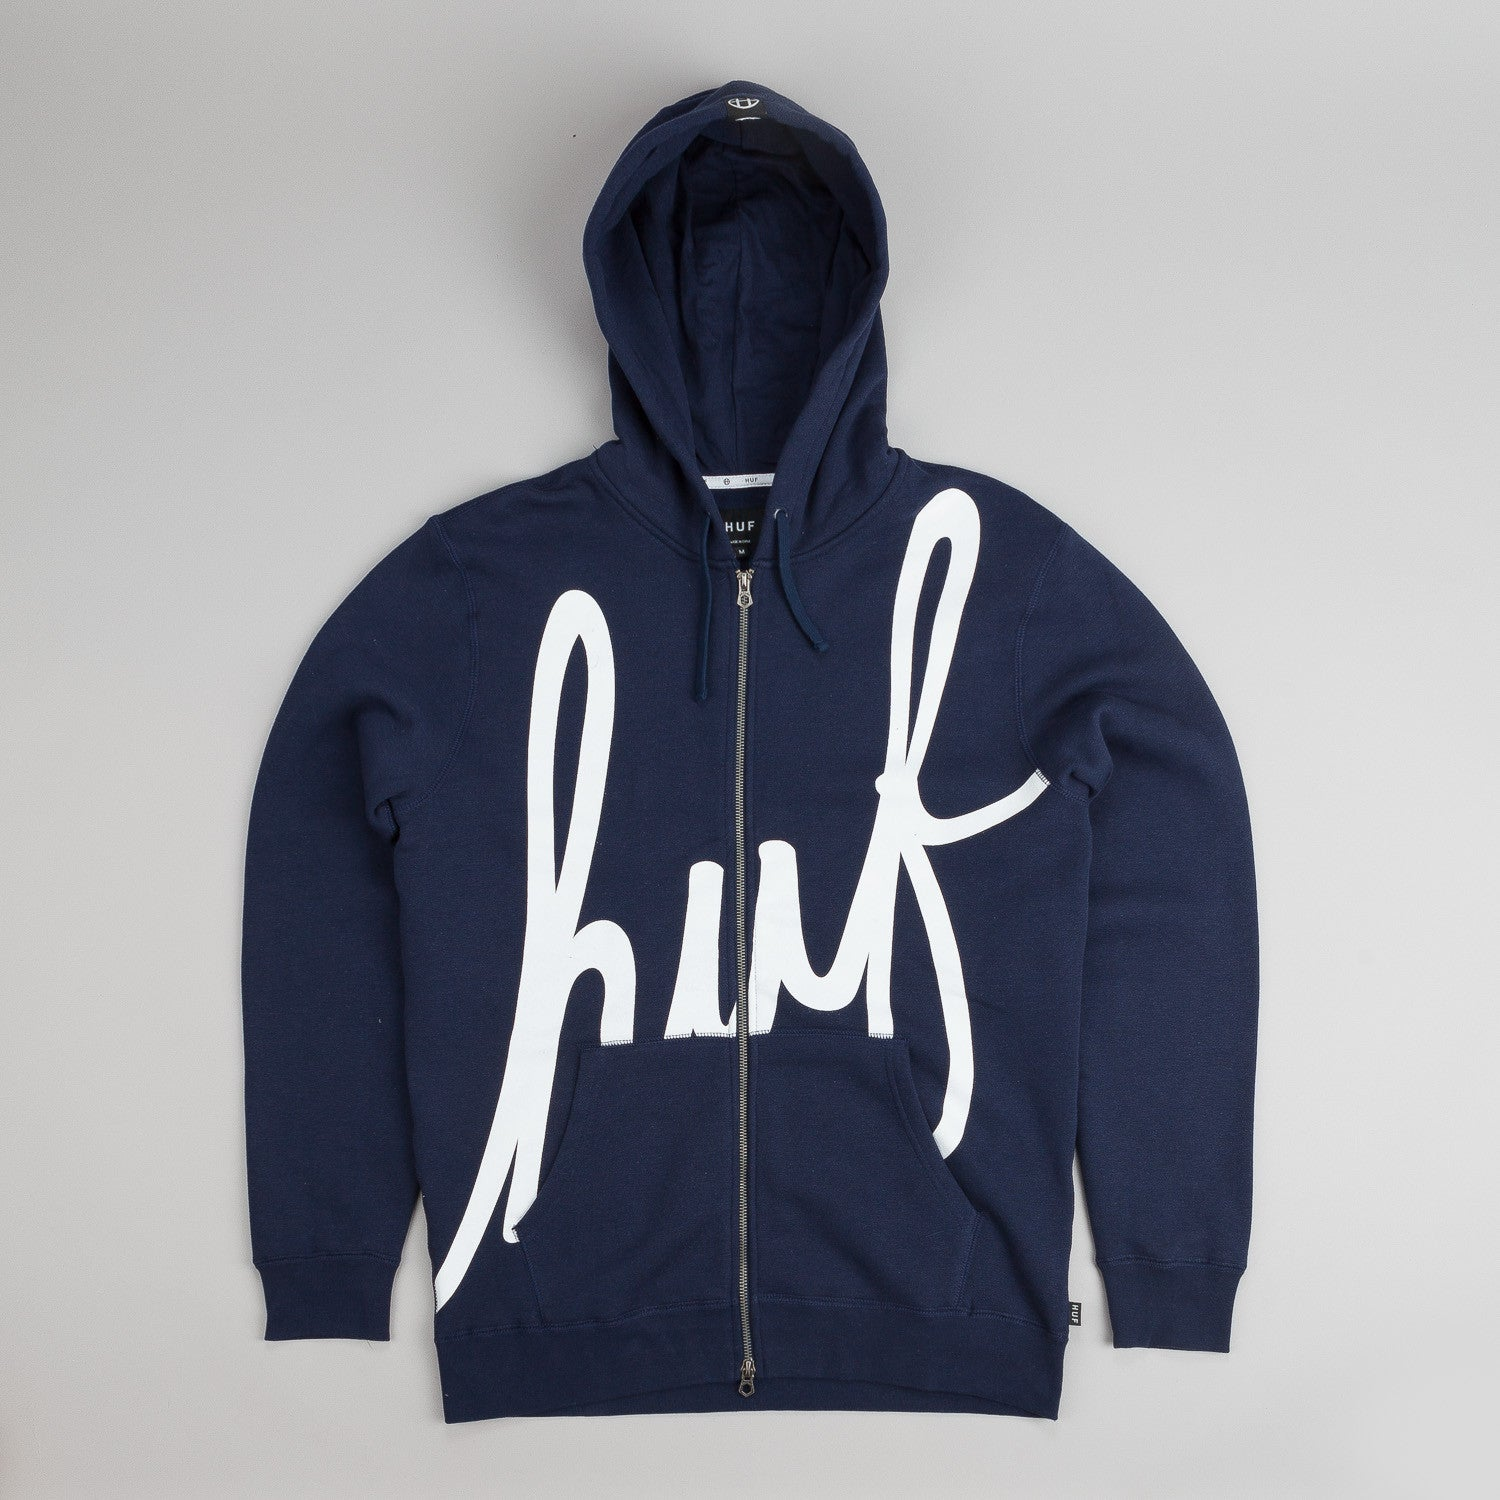 Huf Big Script Zip Hooded Sweatshirt